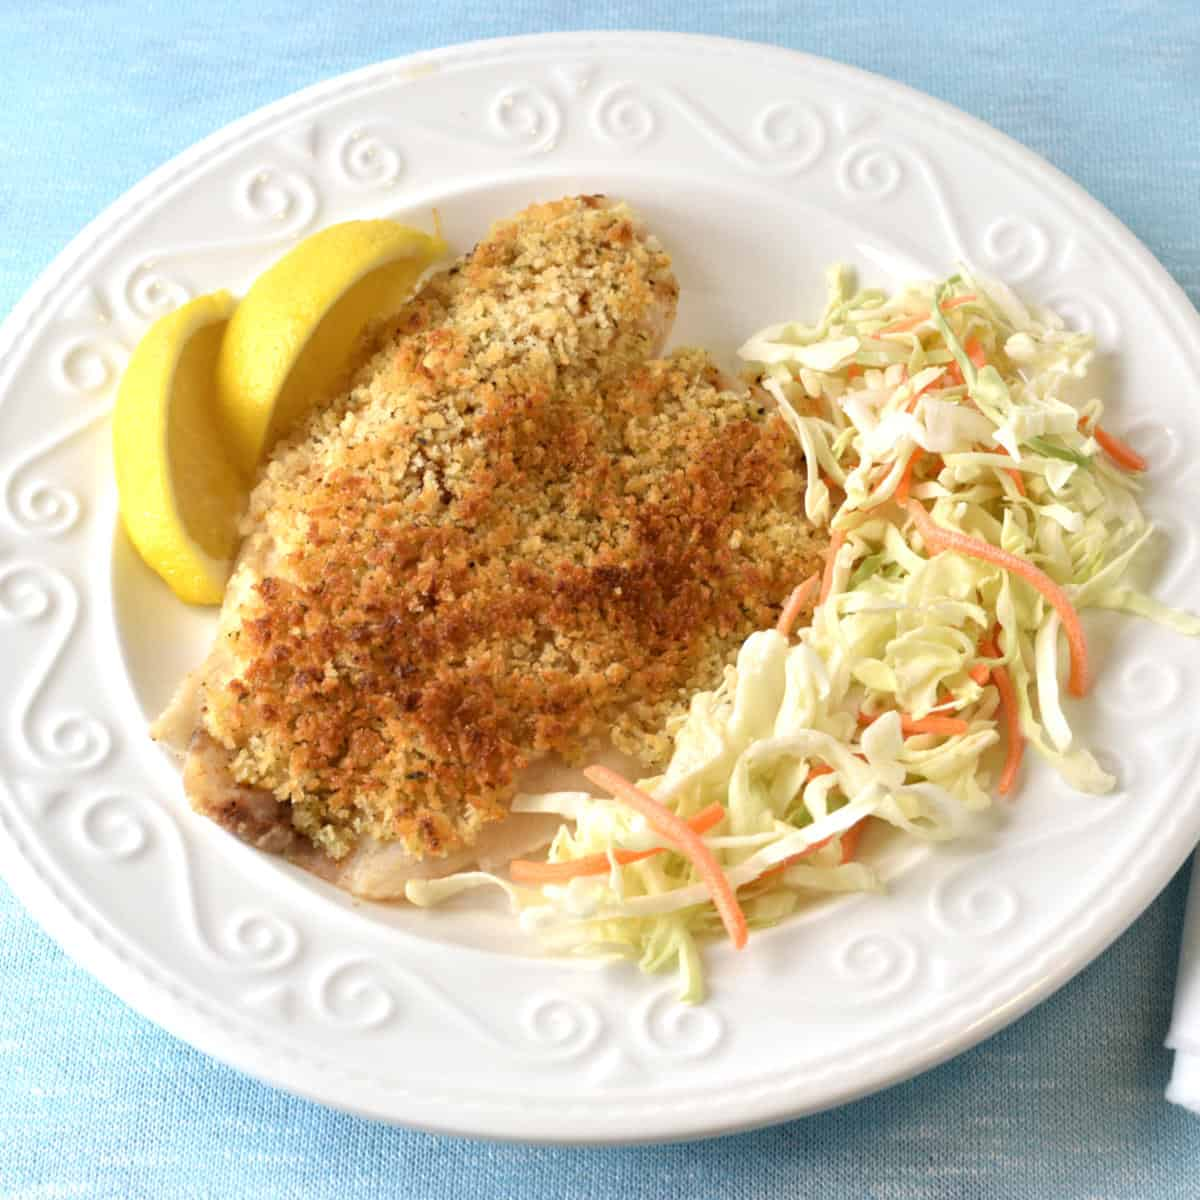 Tilapia with Panko mixture crust with salad and lemon on the side